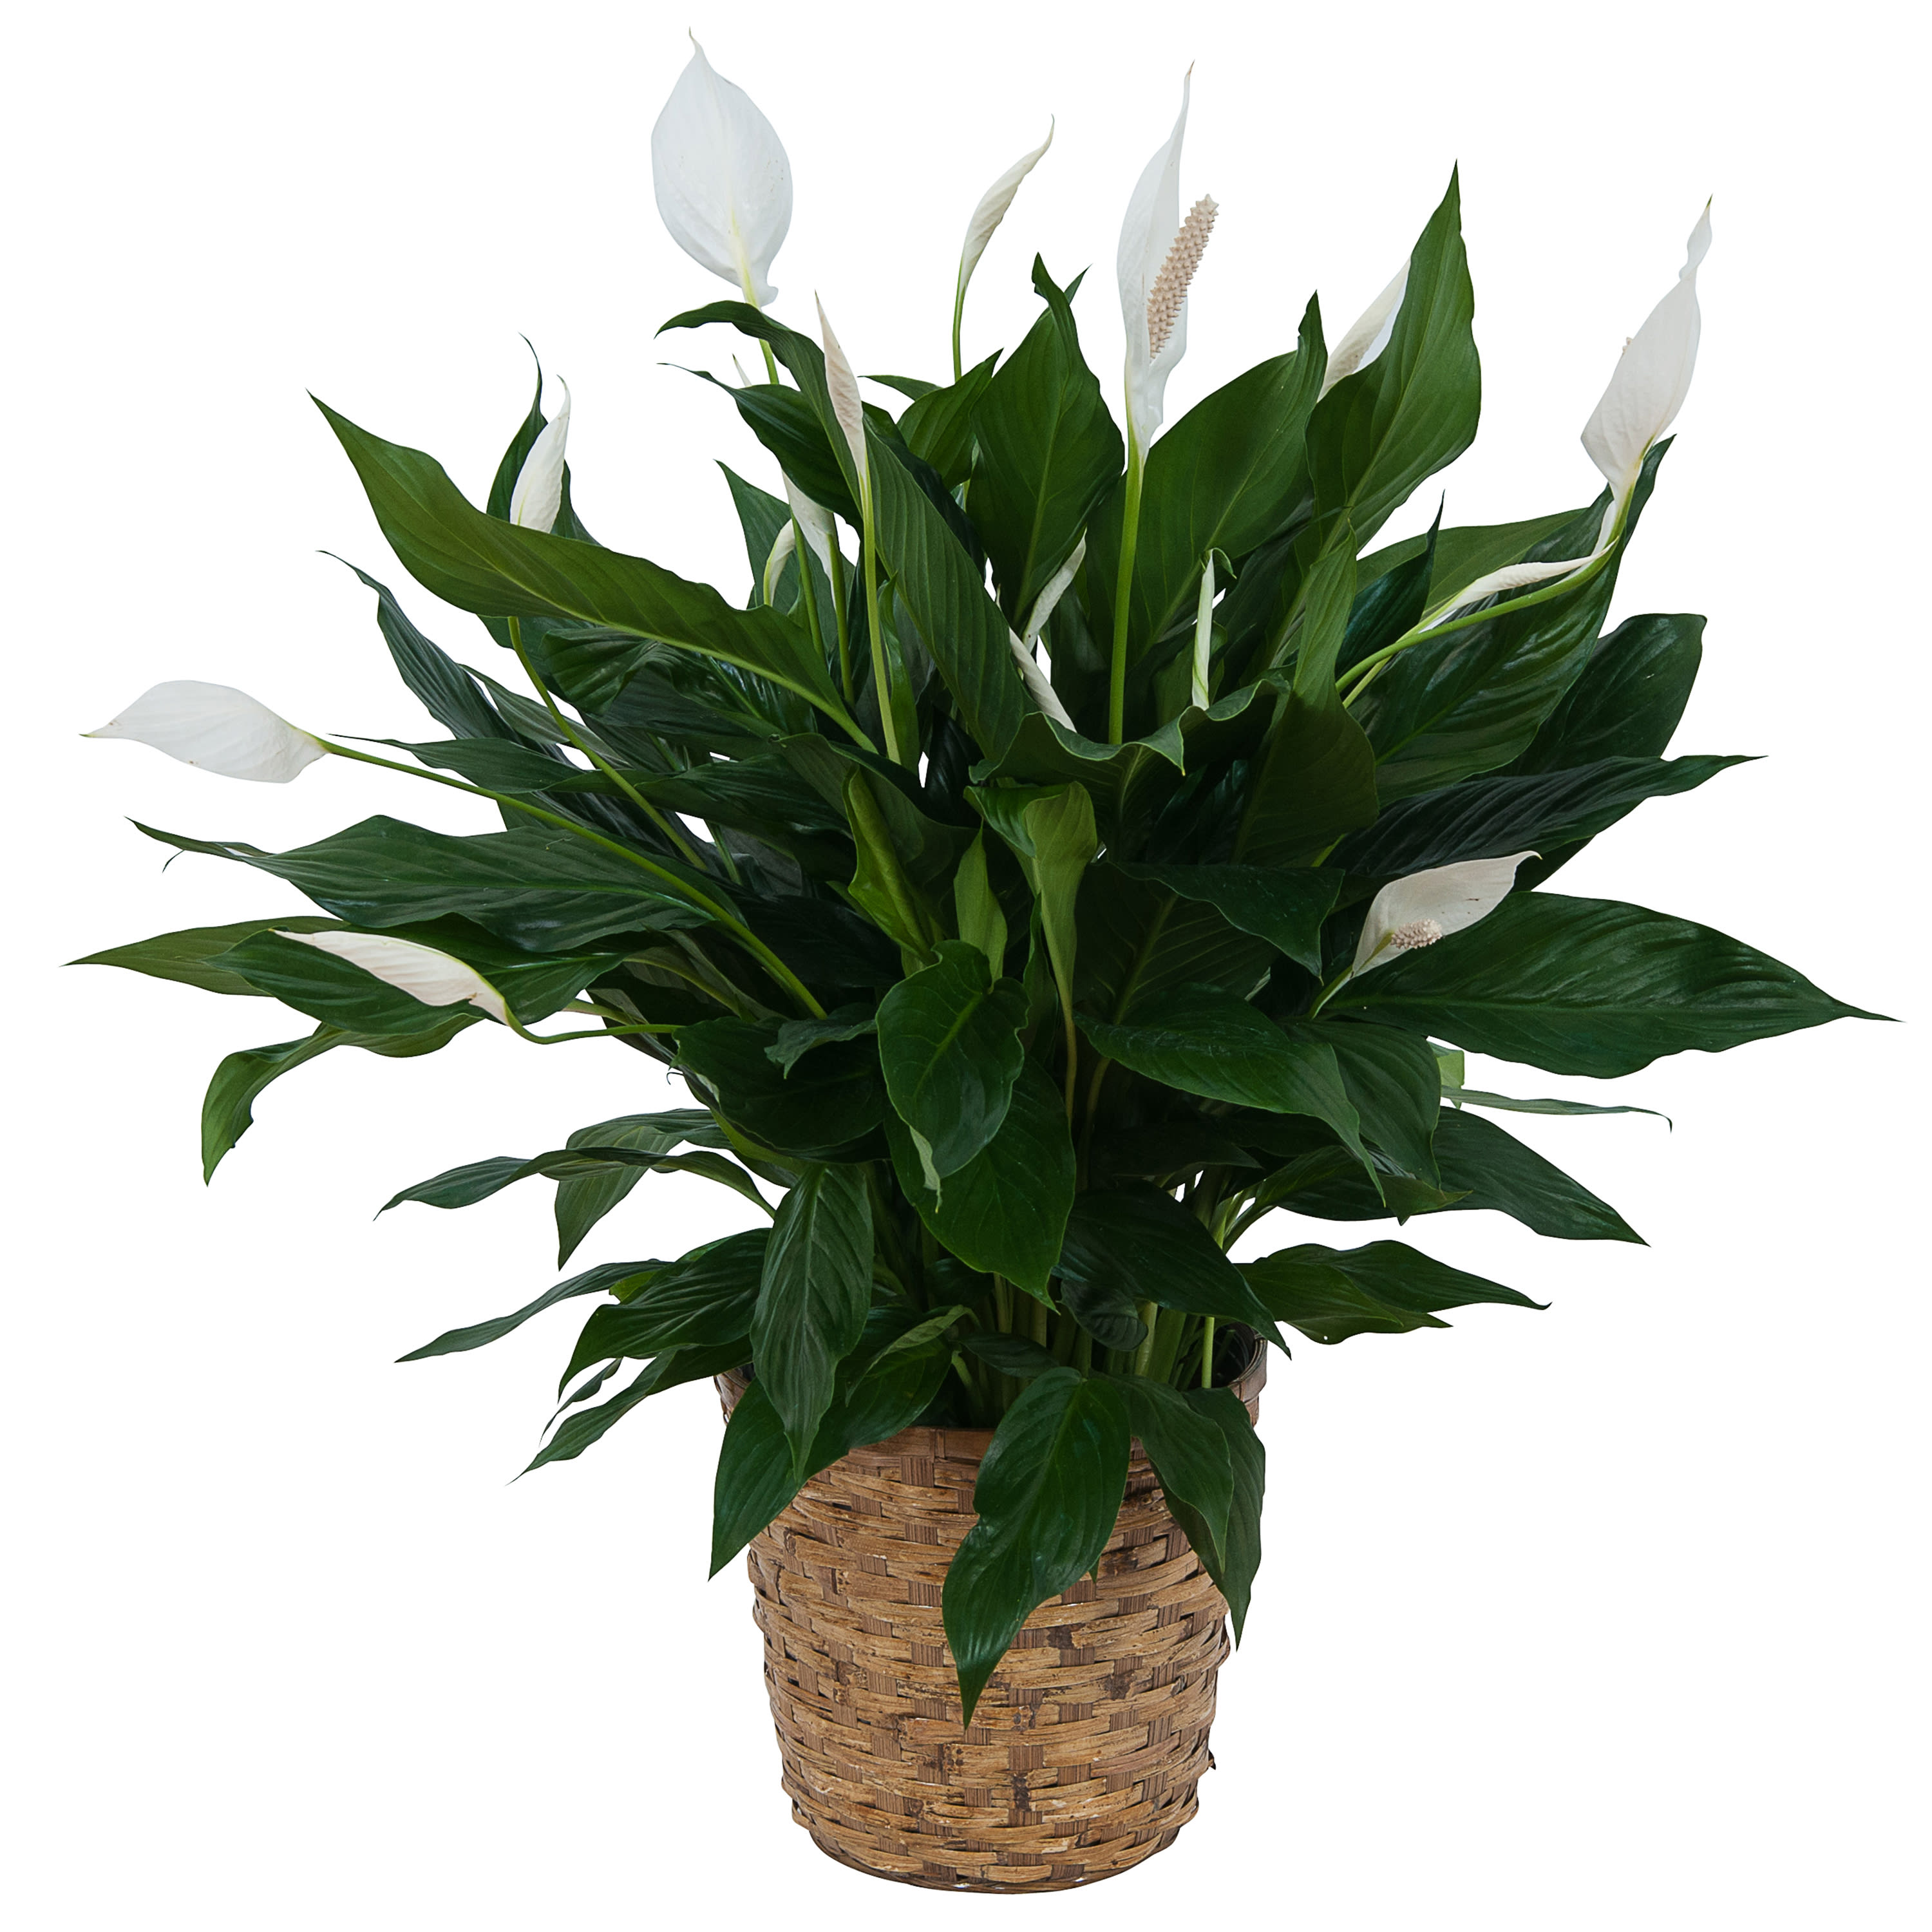 Peace Lily Plant in Basket in Middle River, MD | Drayer's Florist on pineapple plant house plant, dragon plant, black gold lily plant, zamiifolia house plant, croton house plant, peace lily plant benefits, problems with peace lily plant, artificial bamboo house plant, black bamboo potted plant, peace lily family plant, peace lily potted plant, classic peace lily plant, chinese evergreen house plant, marginata house plant, weeping fig house plant, peace plant brown leaves, holly house plant, white and green leaves house plant, funeral peace lily plant, droopy peace lily plant,